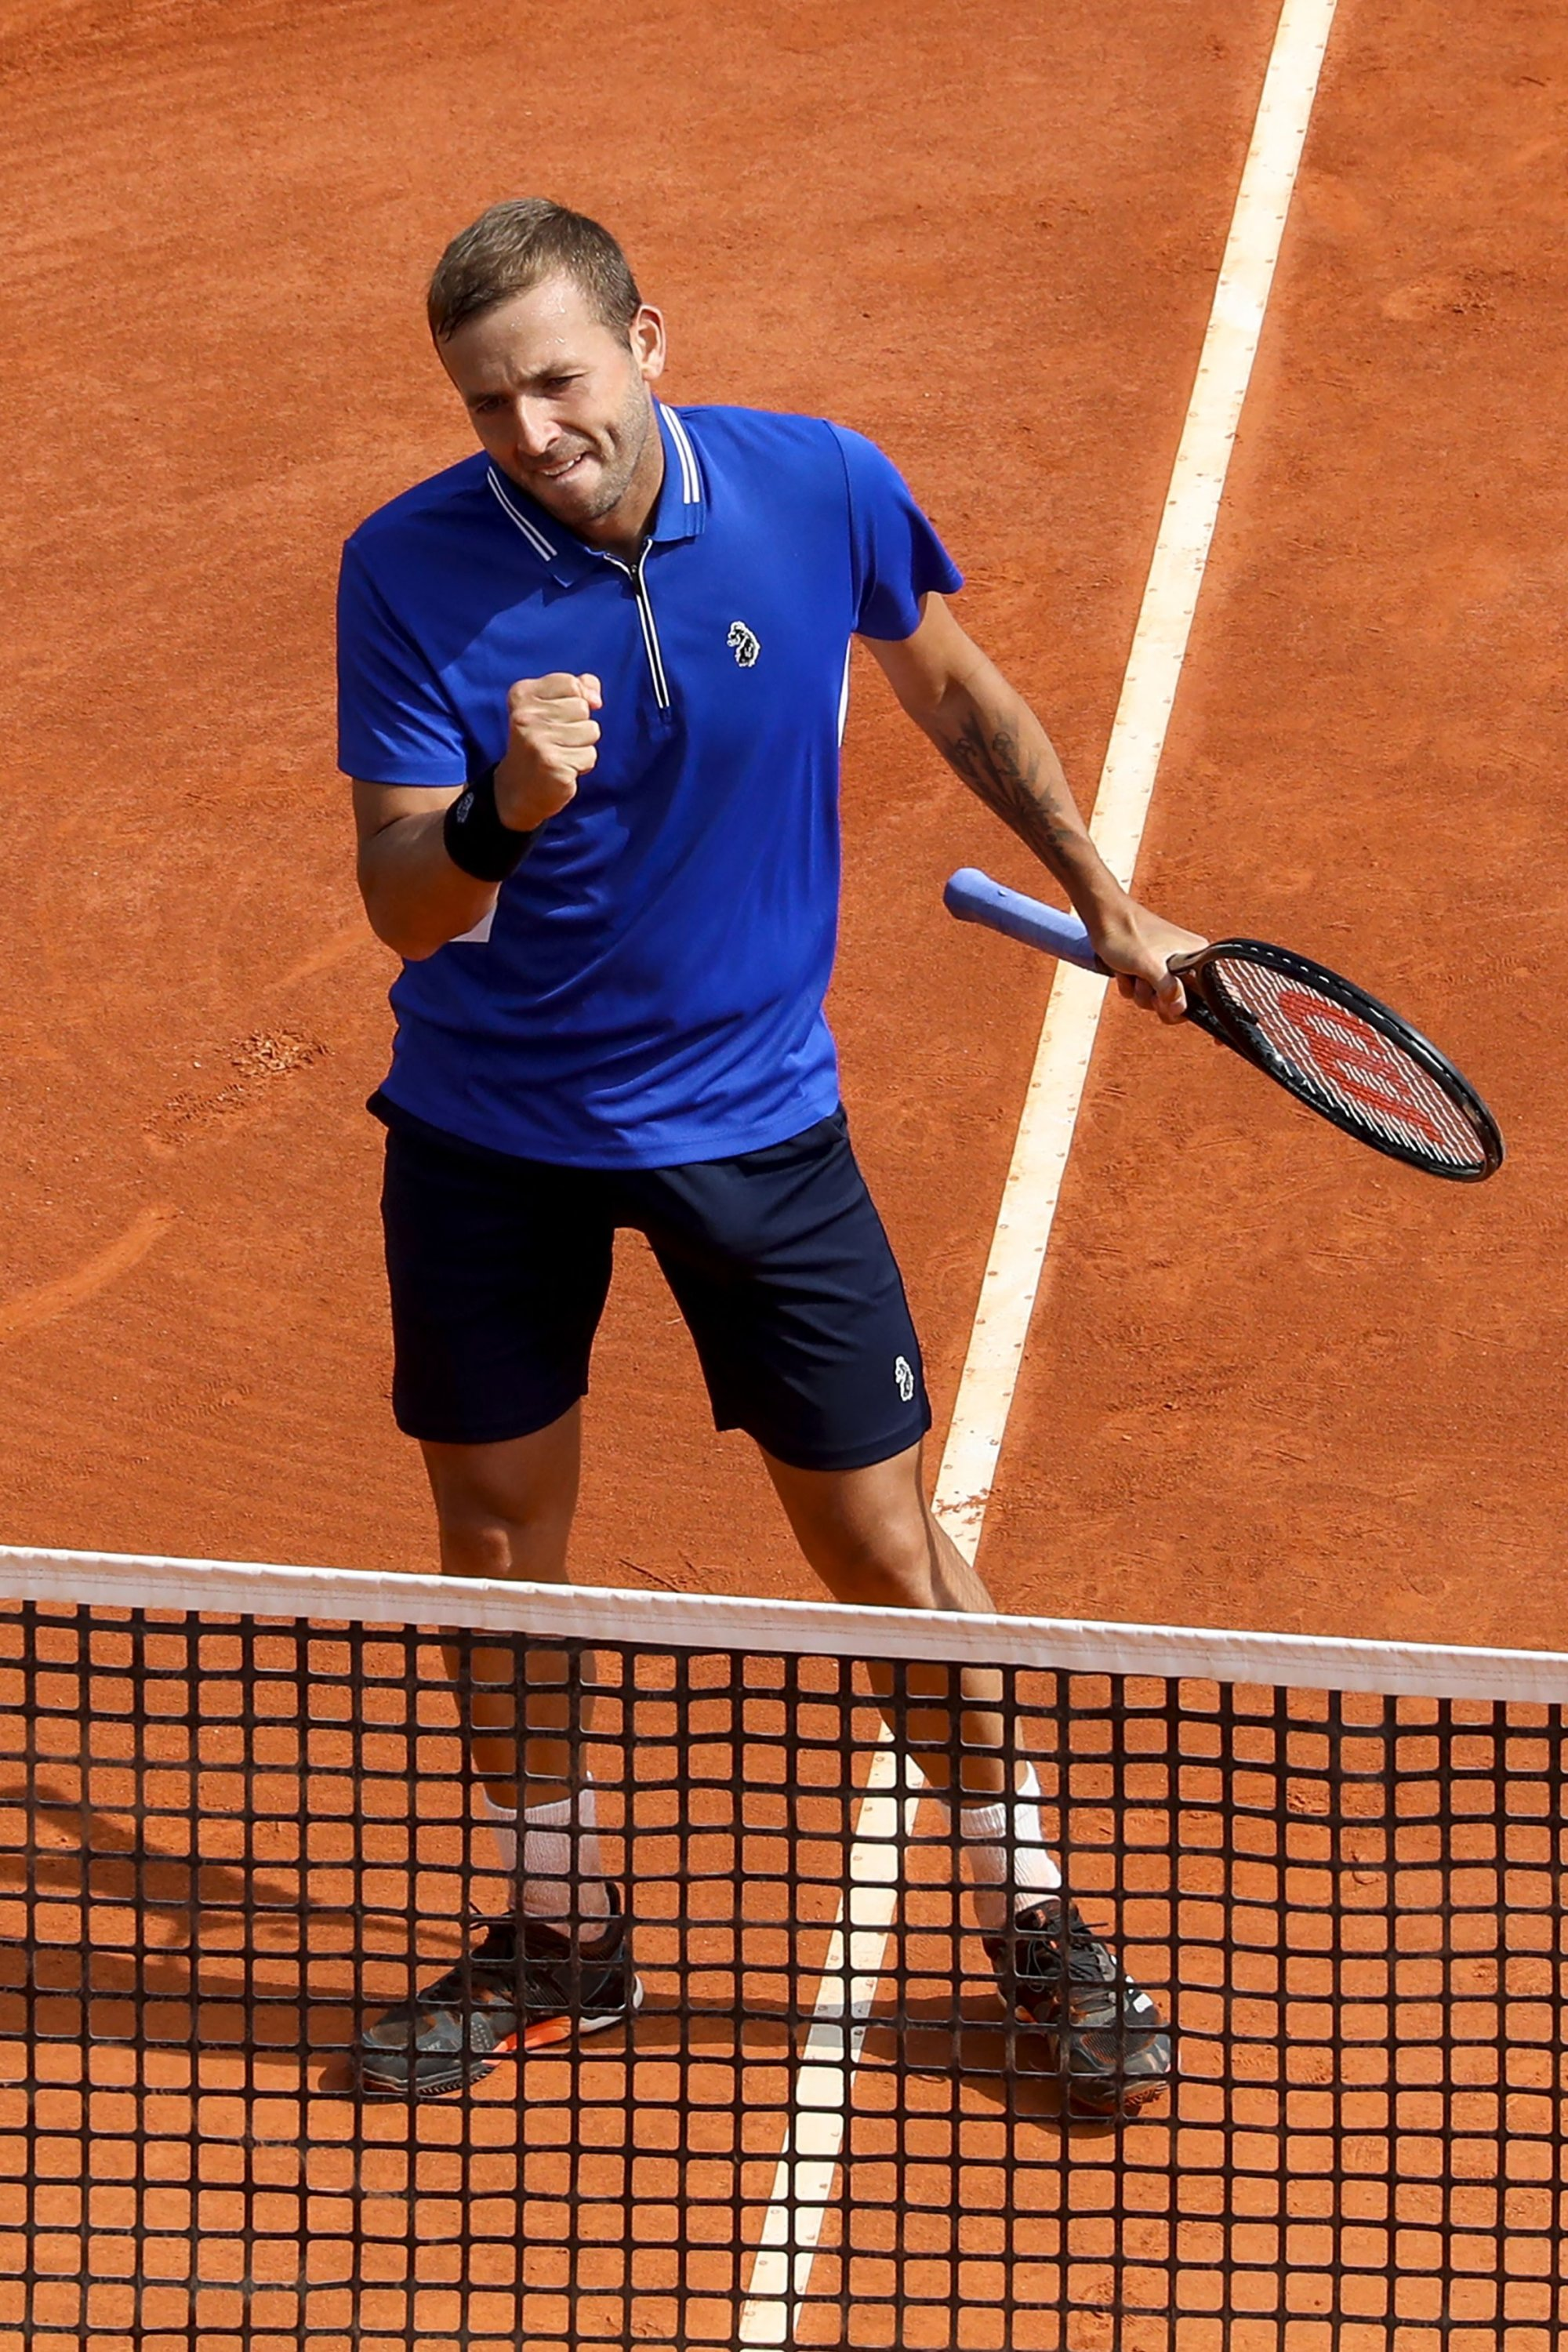 Britain's Daniel Evans celebrates winning his third-round singles match against Serbia's Novak Djokovic at the Monte Carlo Masters, in Monaco, April 15, 2021. (AFP Photo)